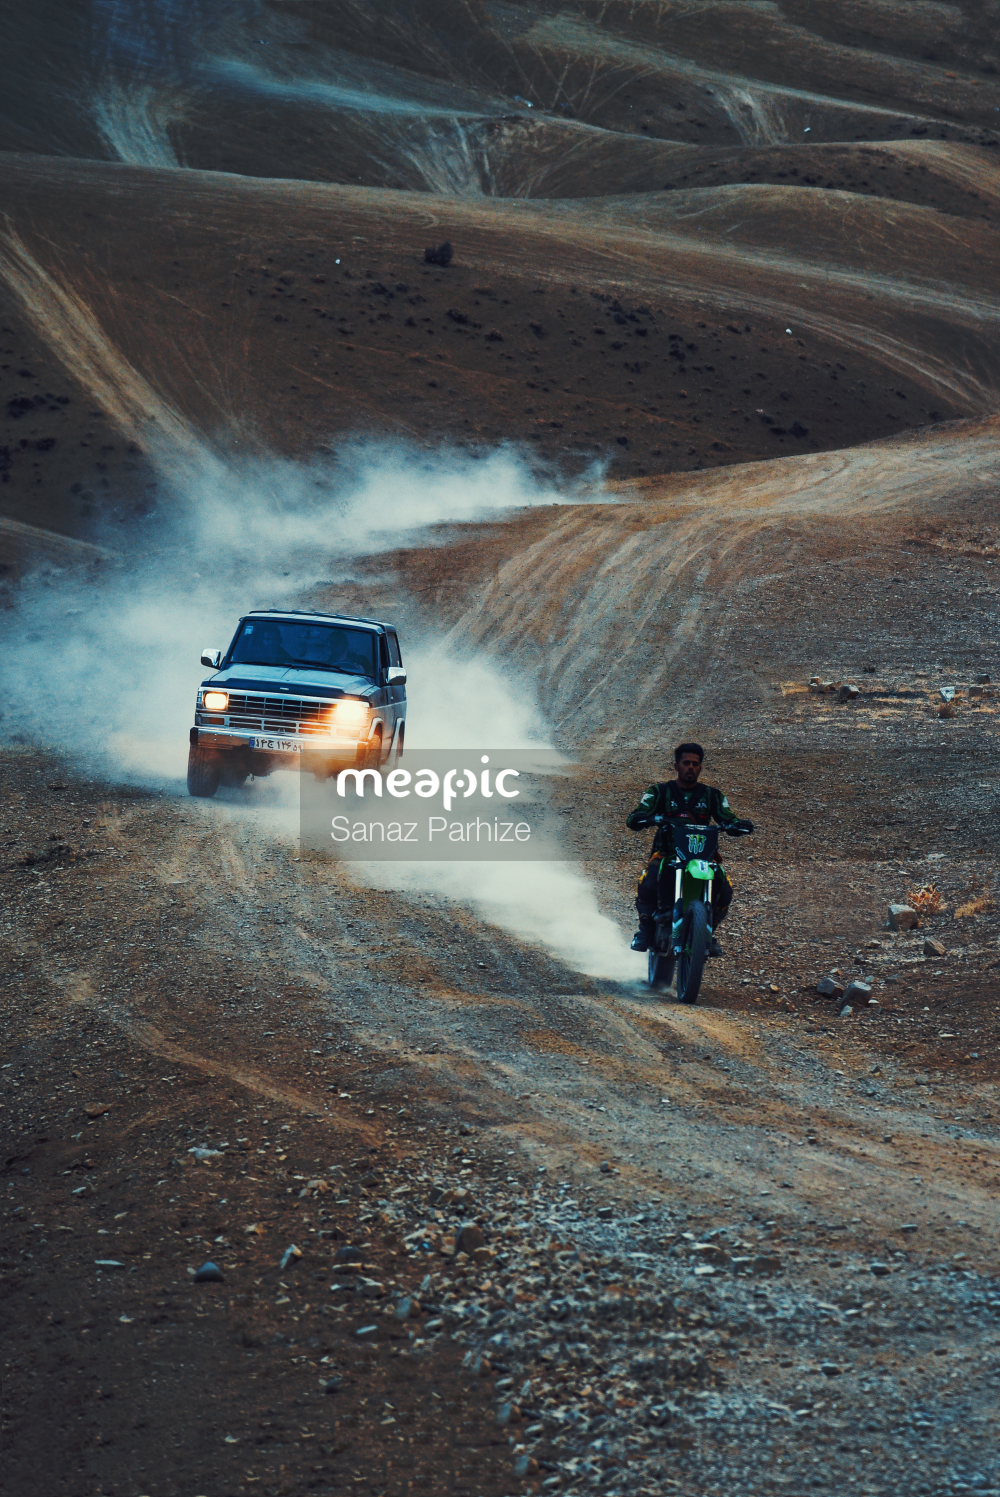 Person Riding On The Back Of A Truck Driving Down A Dirt Road Stock Photo · Meapic